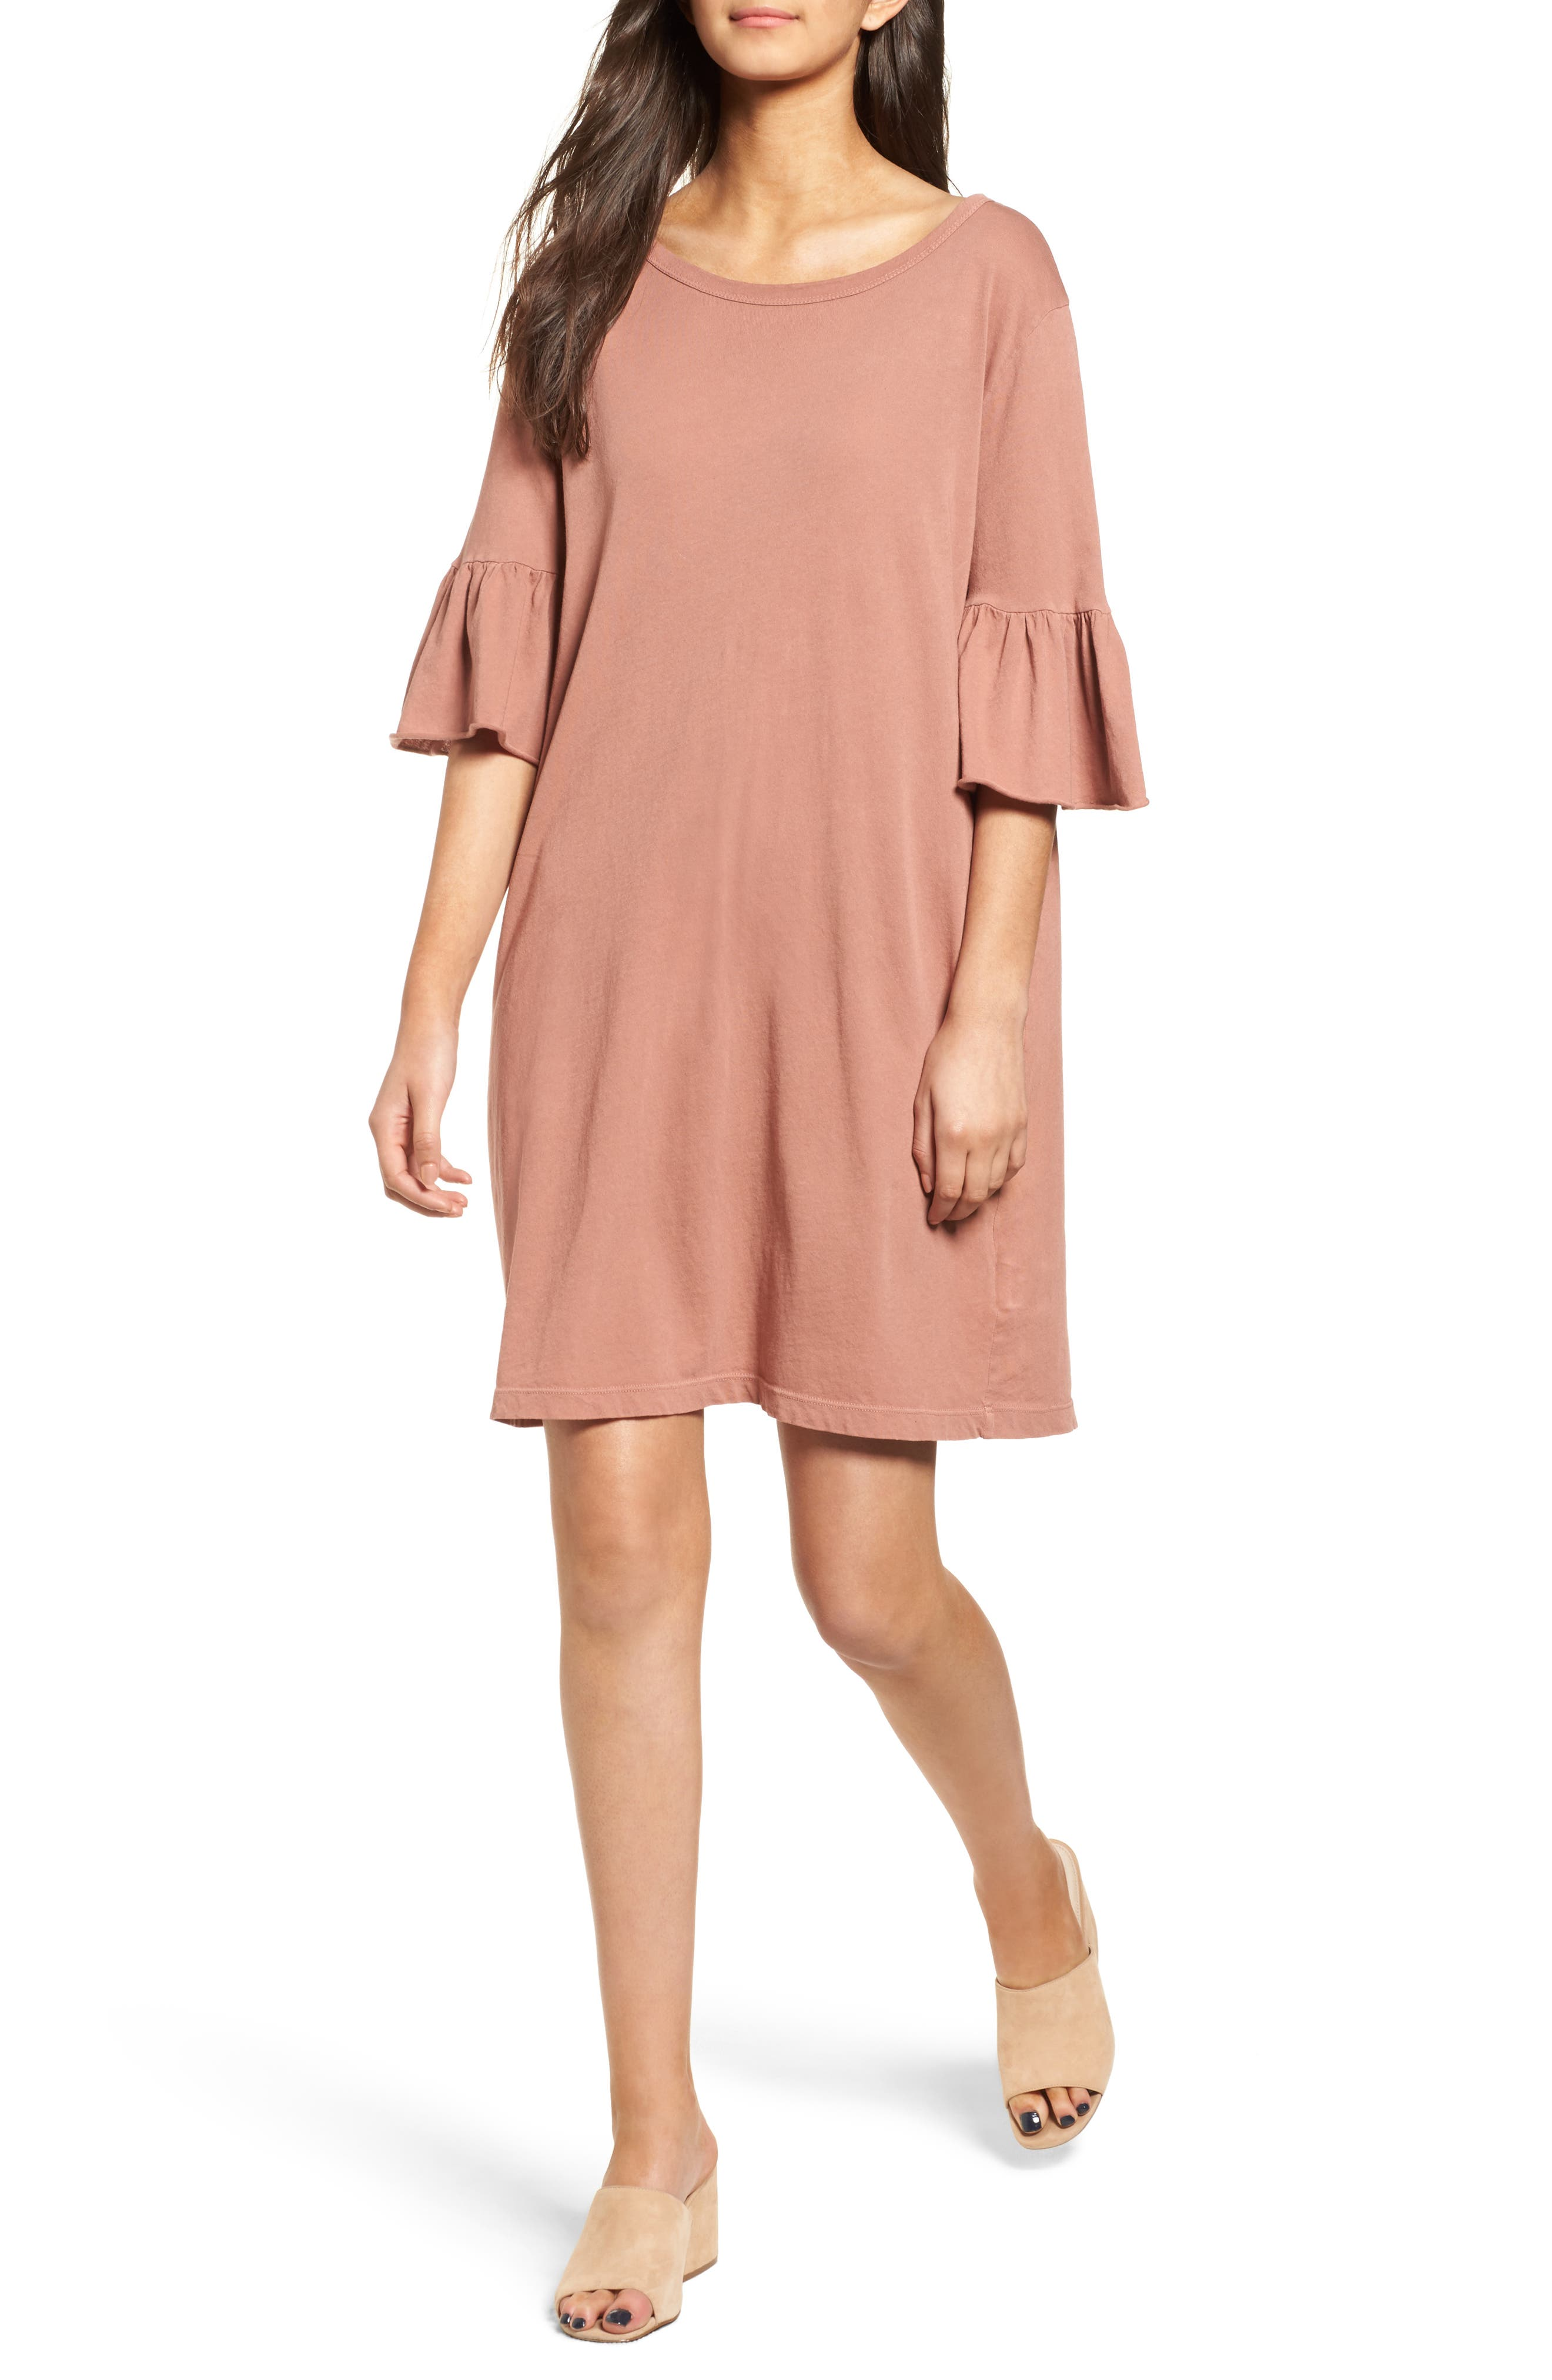 Current/Elliott Abigail Knit Dress